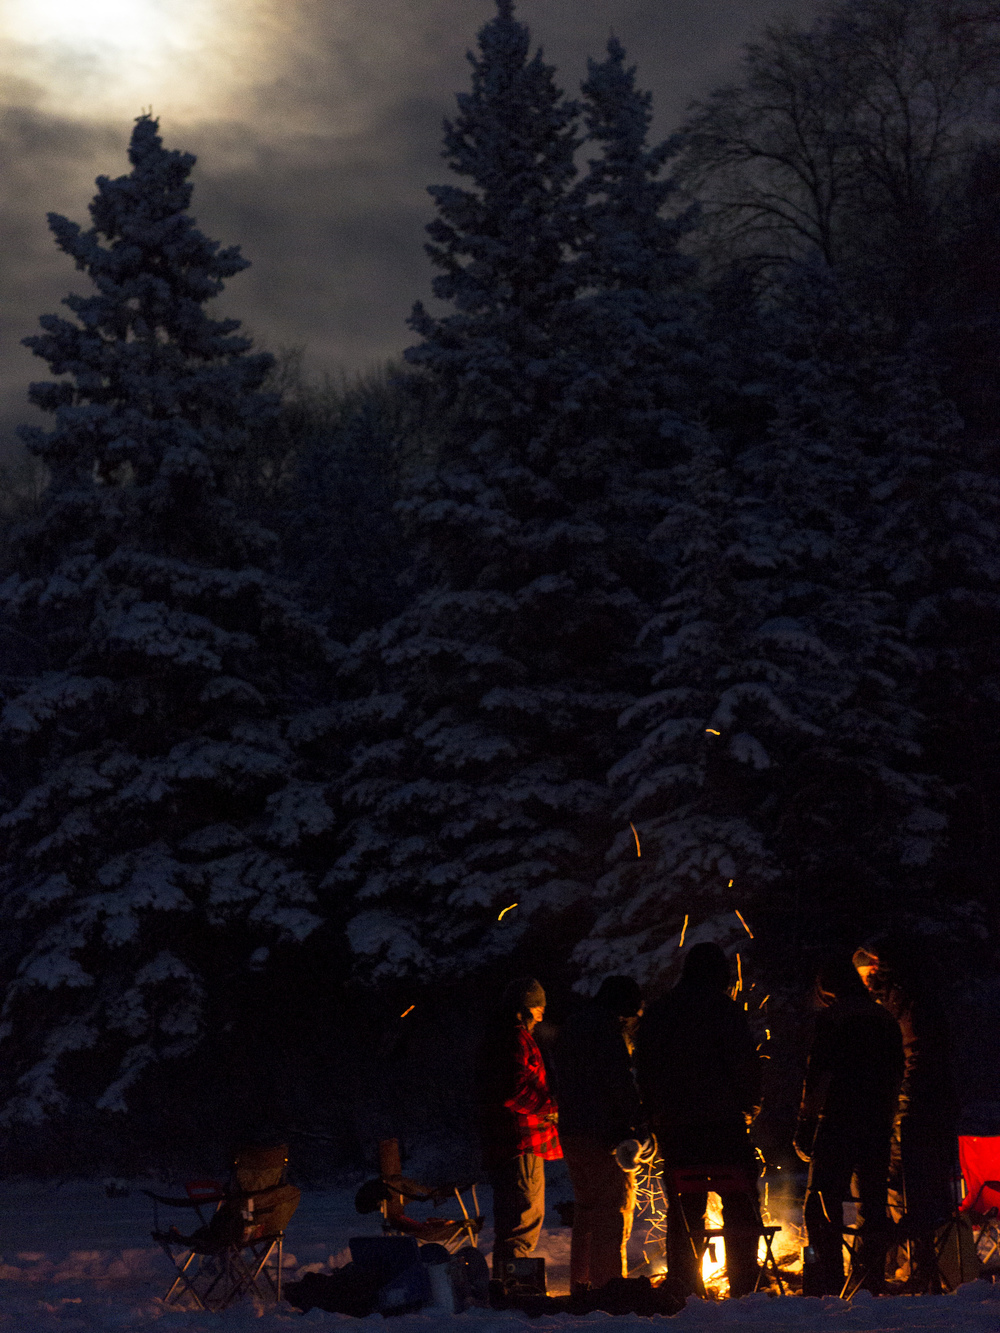 Gathering around with ice and fire under a moon-lit sky.